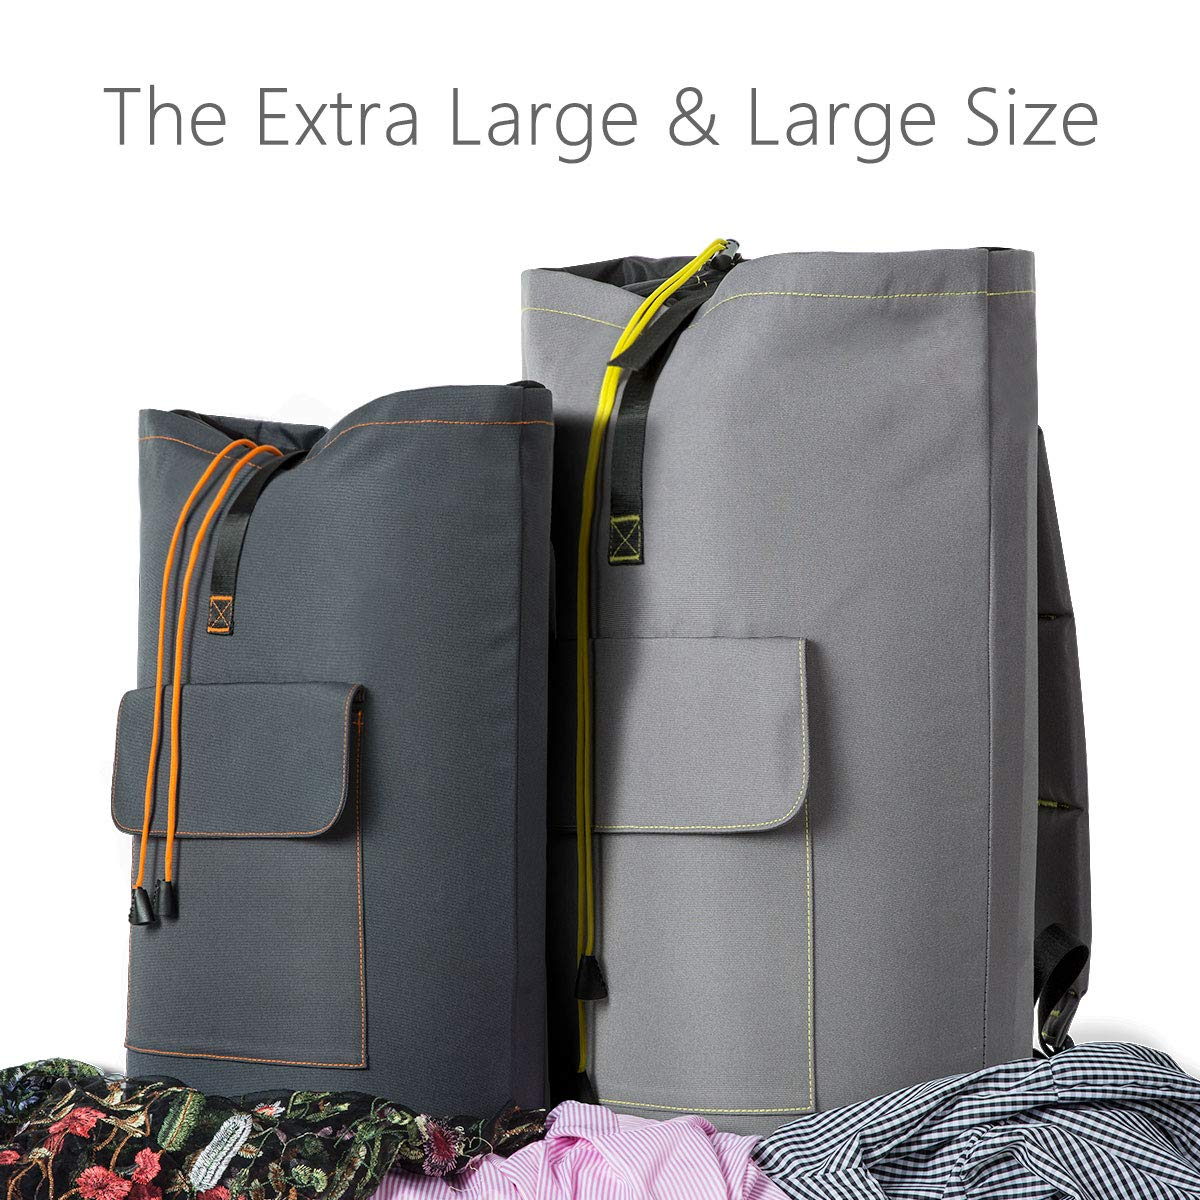 WOWLIVE Large Laundry Bag Laundry Backpack Hanging Laundry Hamper  Adjustable Shoulder Straps Camping Bag Waterproof Durable Collage Apartment  Dorm Sports ... d1dc3a4cc5a91